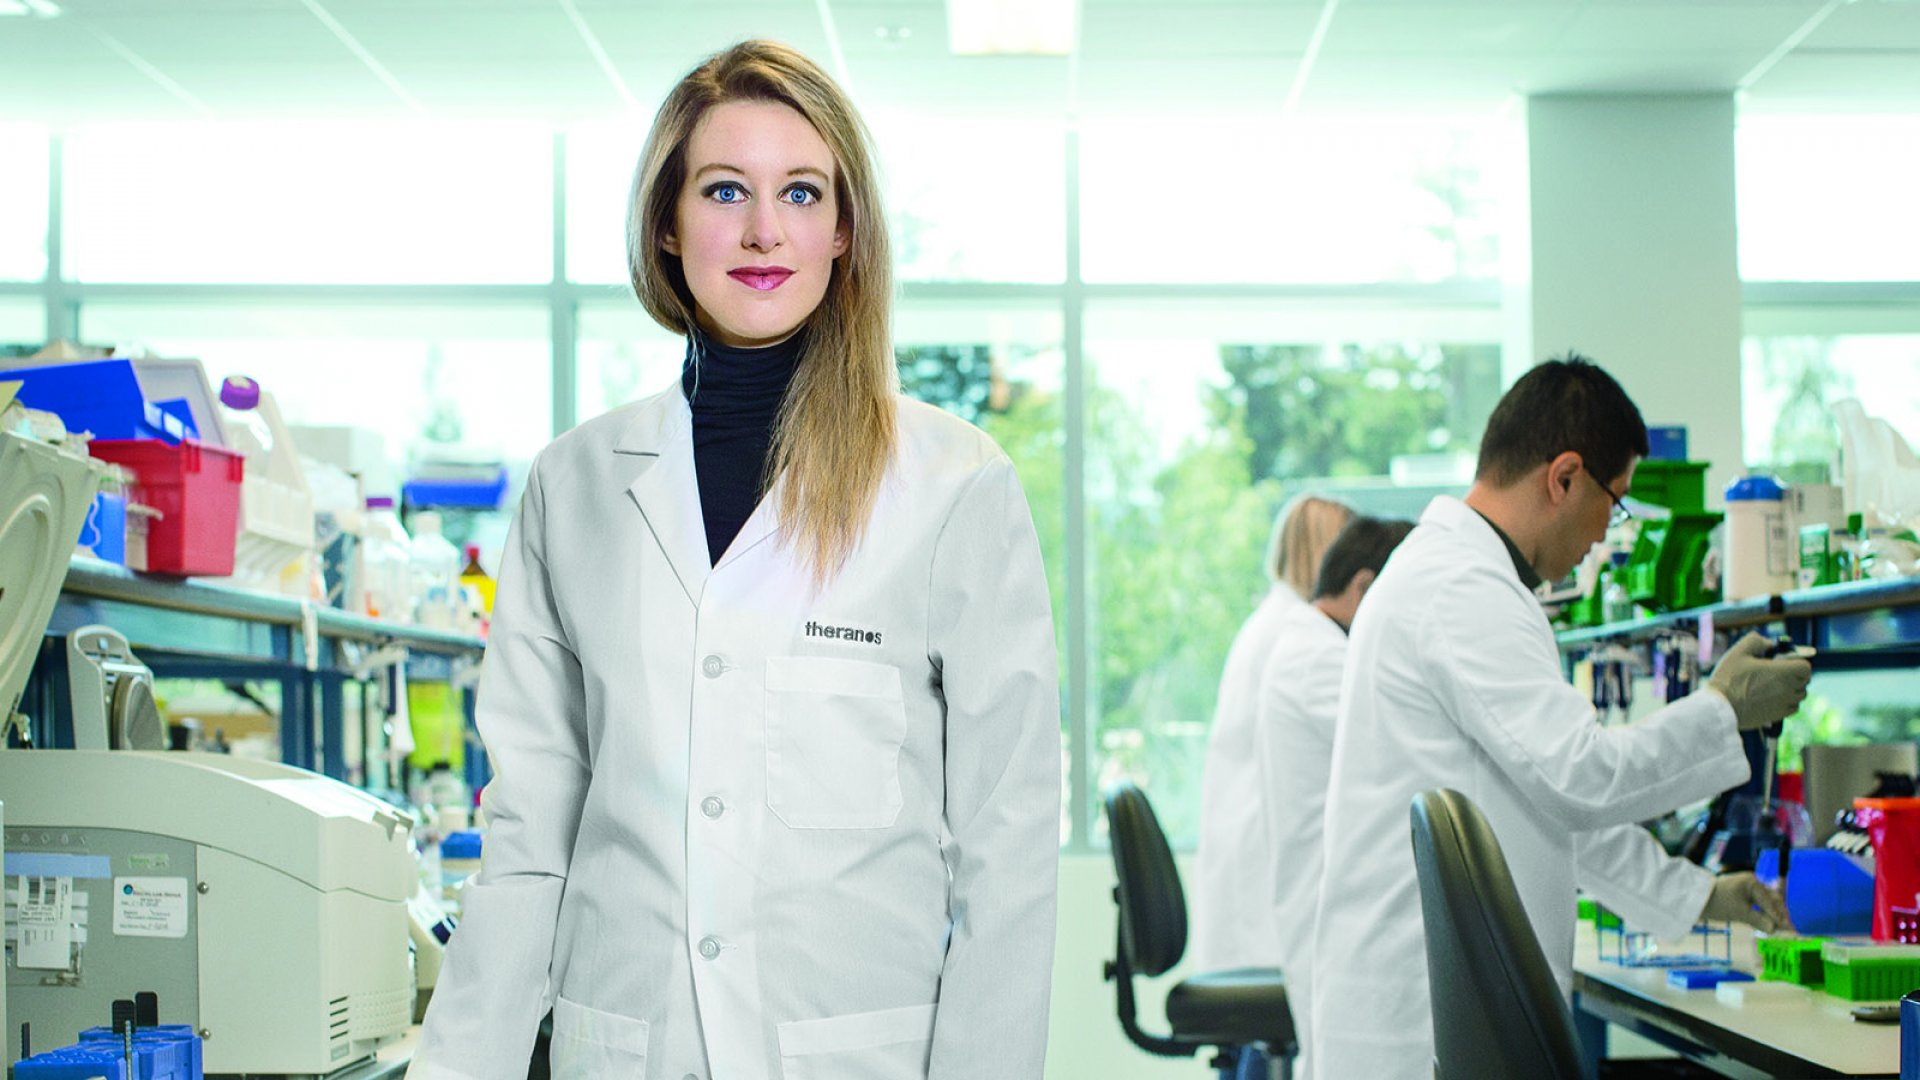 Theranos CEO Elizabeth Holmes has been banned from running a clinical lab for two years.